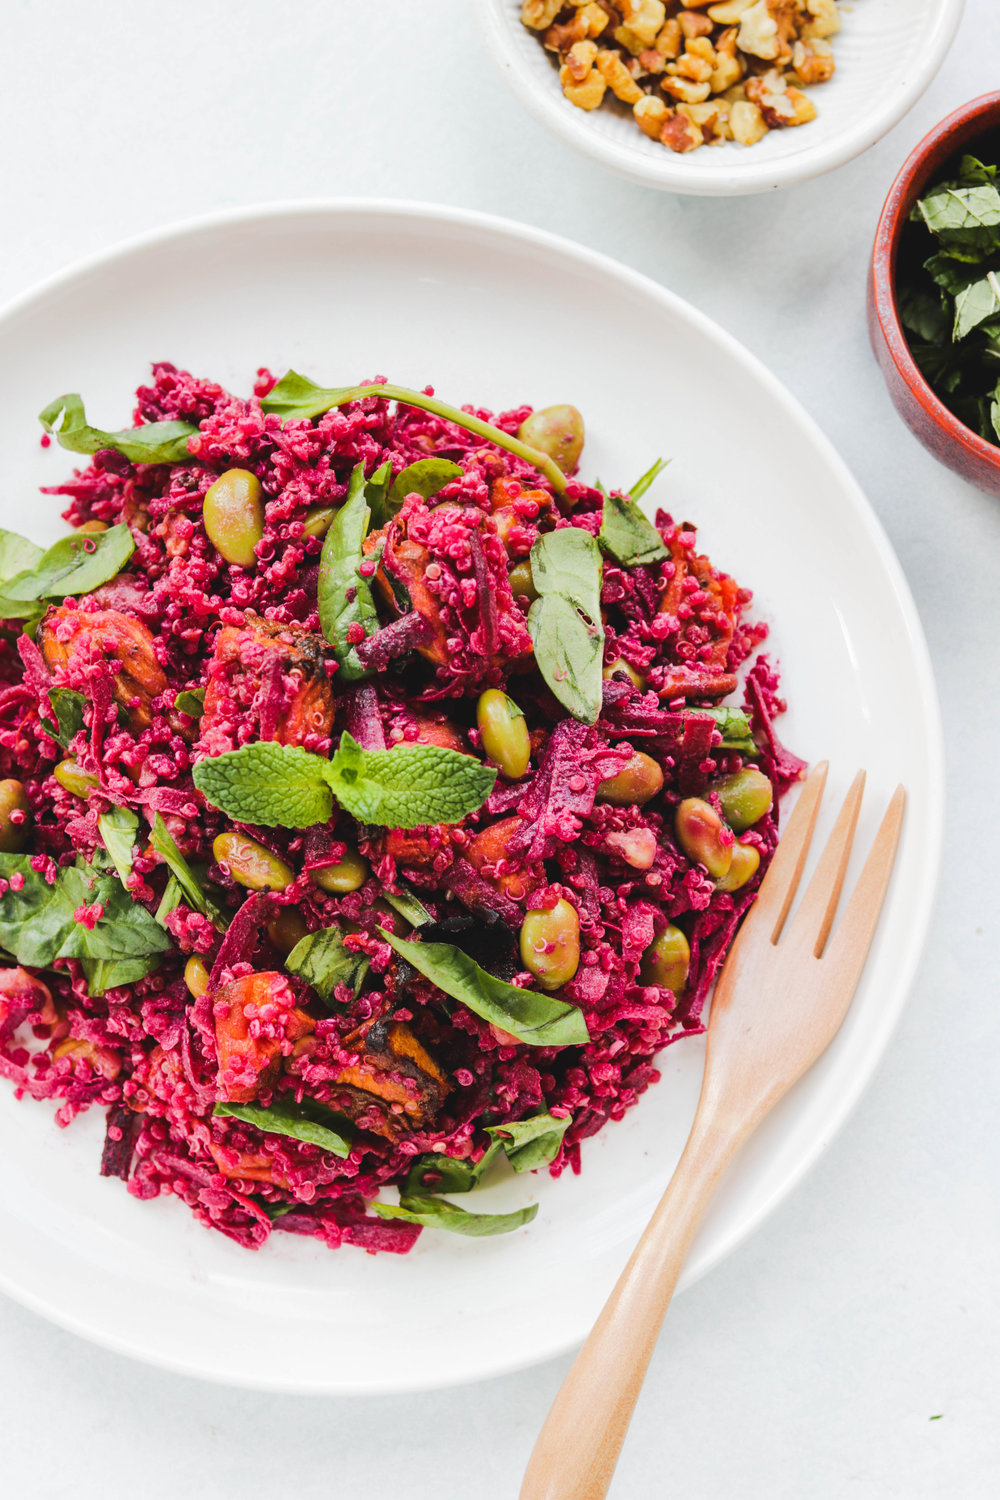 Beet Salad with Quinoa and Sunflower Seed Dressing C (1 of 1).jpg